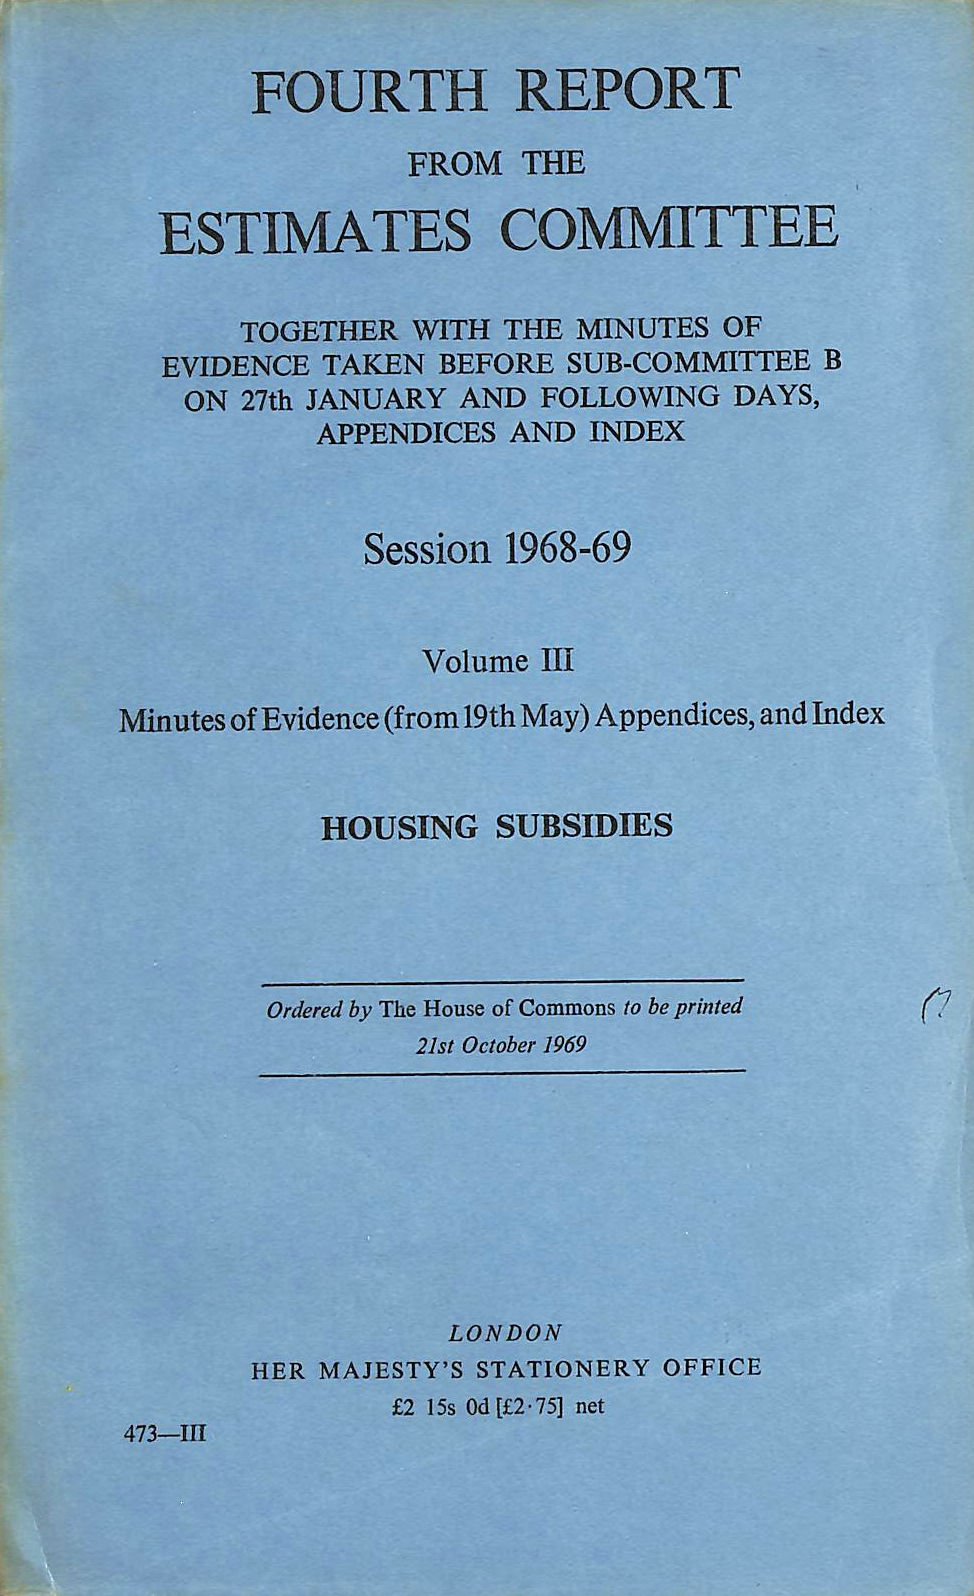 Image for Fourth Report from the Estimates Committee, Volume III